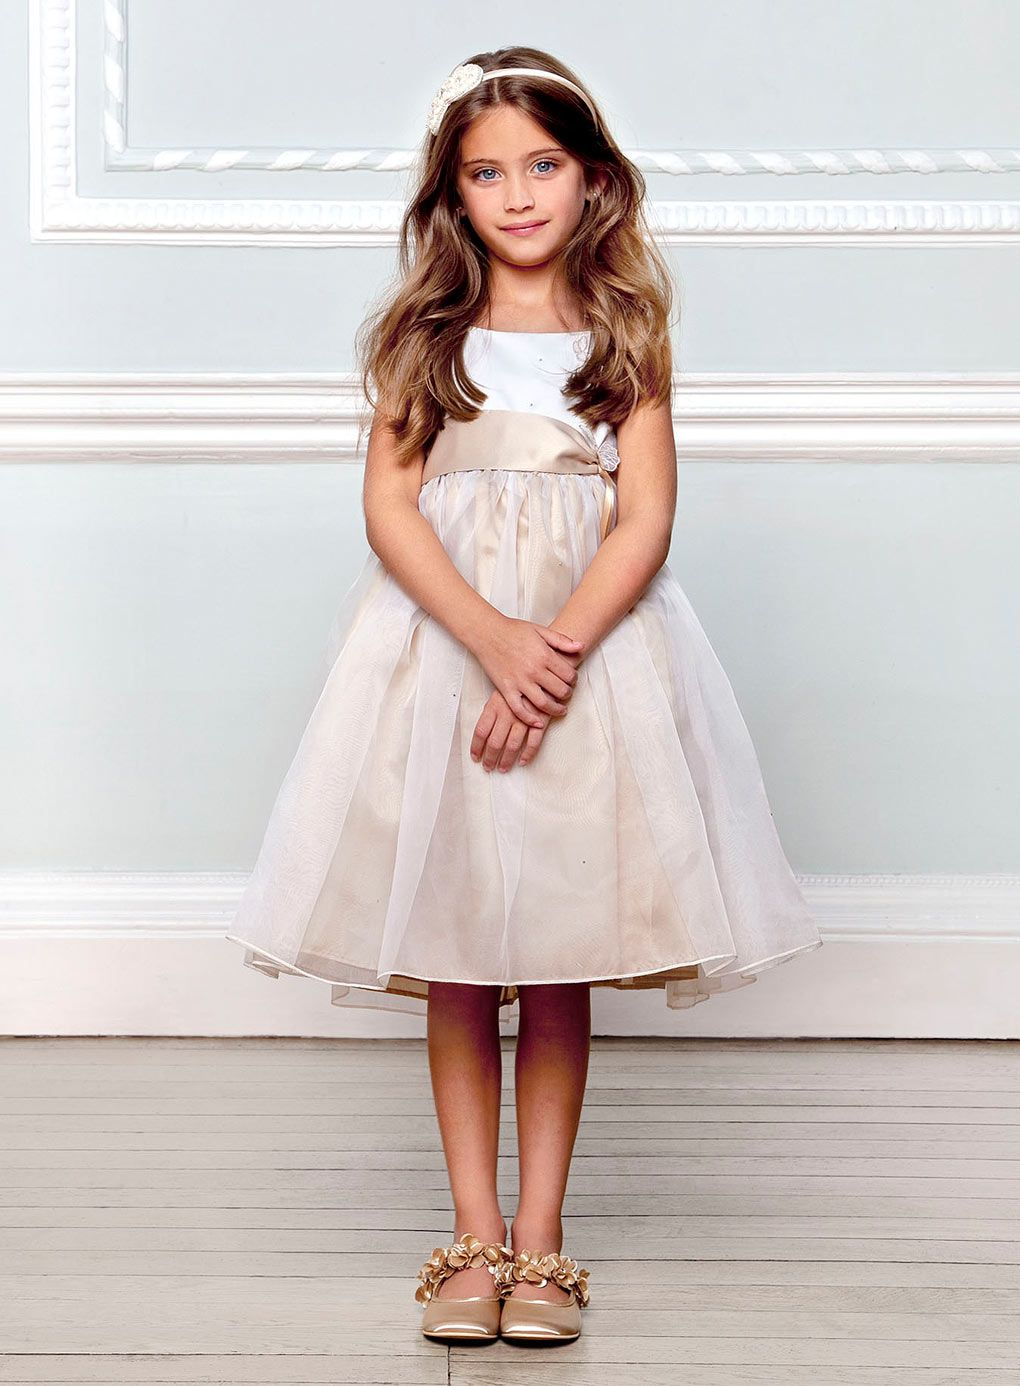 Lela butterfly champagne bridesmaid dress bhs page boy lela butterfly champagne bridesmaid dress bhs ombrellifo Gallery